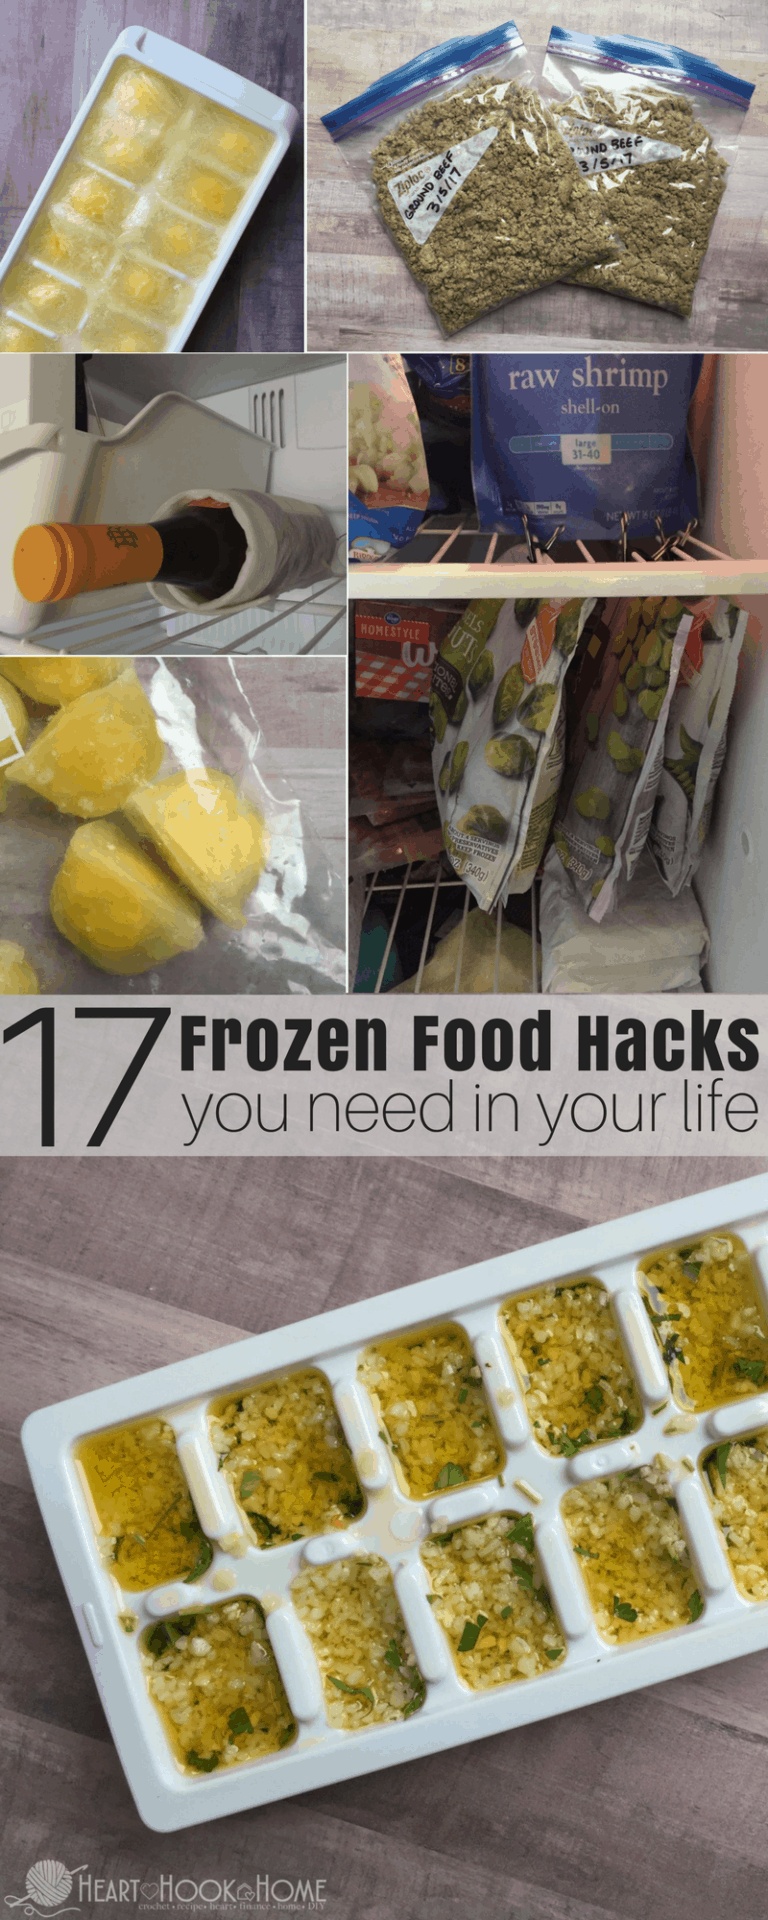 17 Frozen Food Hacks to Get the Most Out of Your Freezer